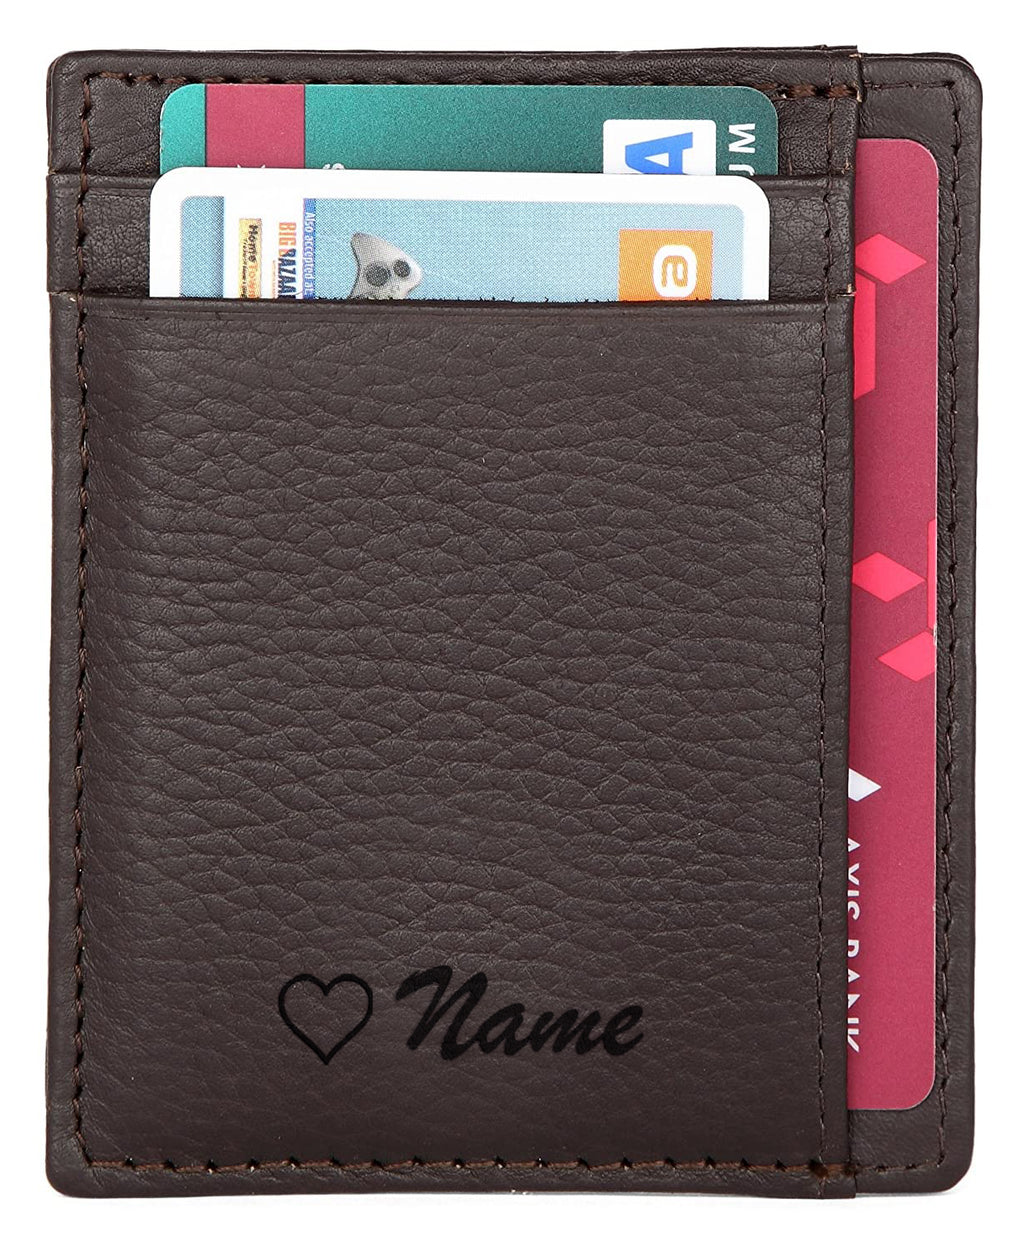 WildHorn® RFID Protected Custom Engraved Personalized High Quality Unisex Leather Card Holder for Gifting - WILDHORN